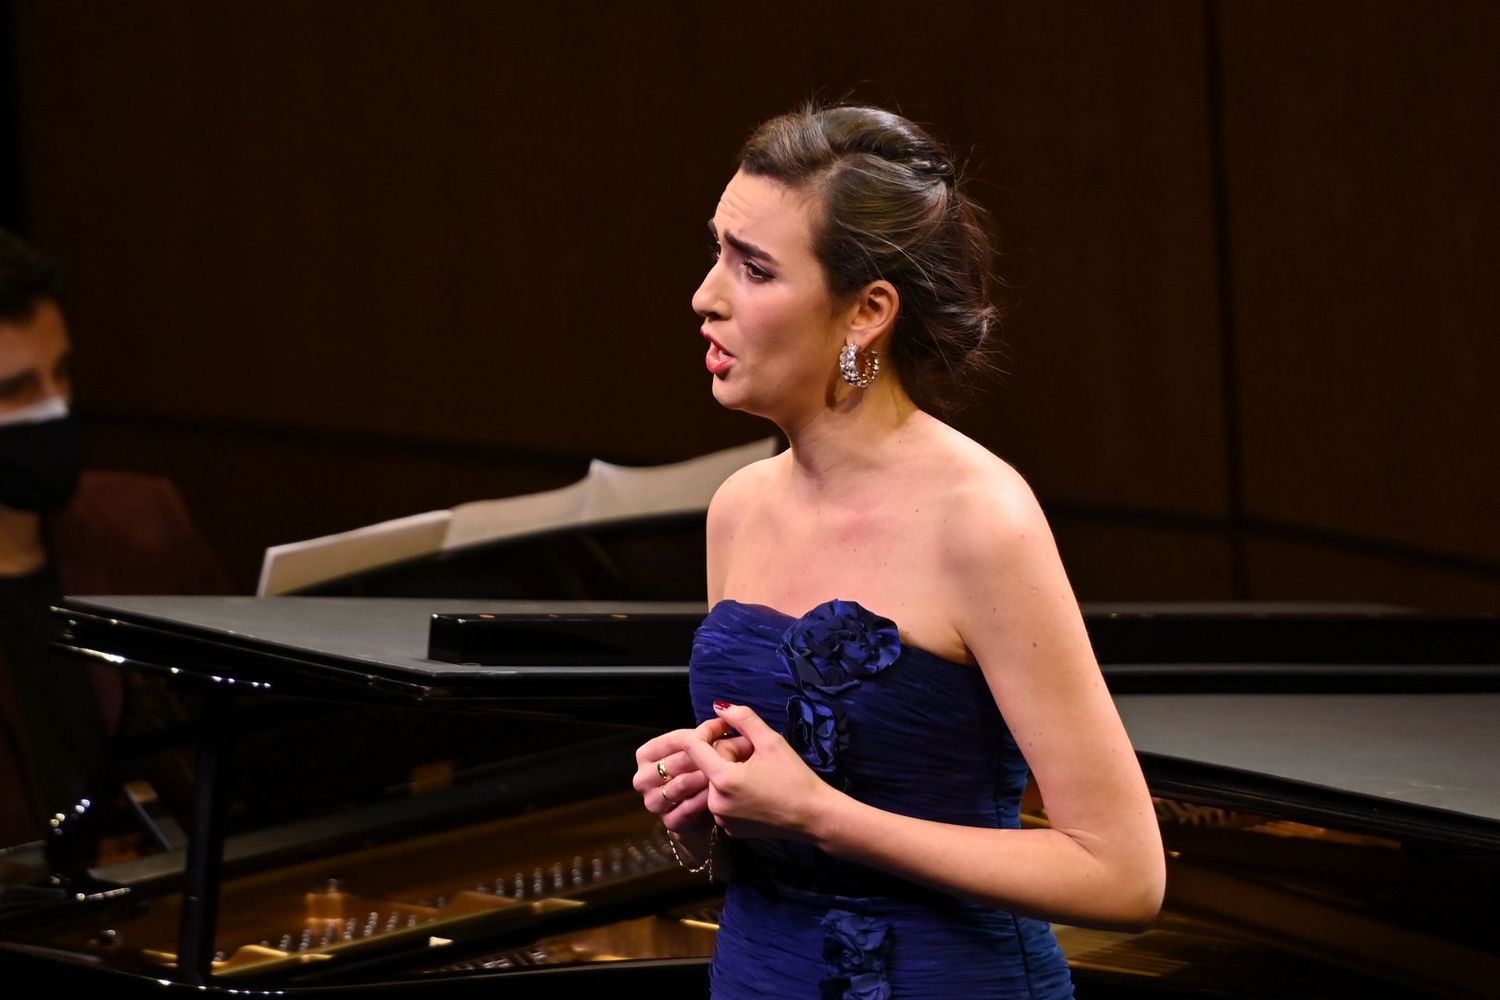 The Spanish mezzo-soprano Carmen Artaza wins first prize in the 58th Tenor Viñas Contest